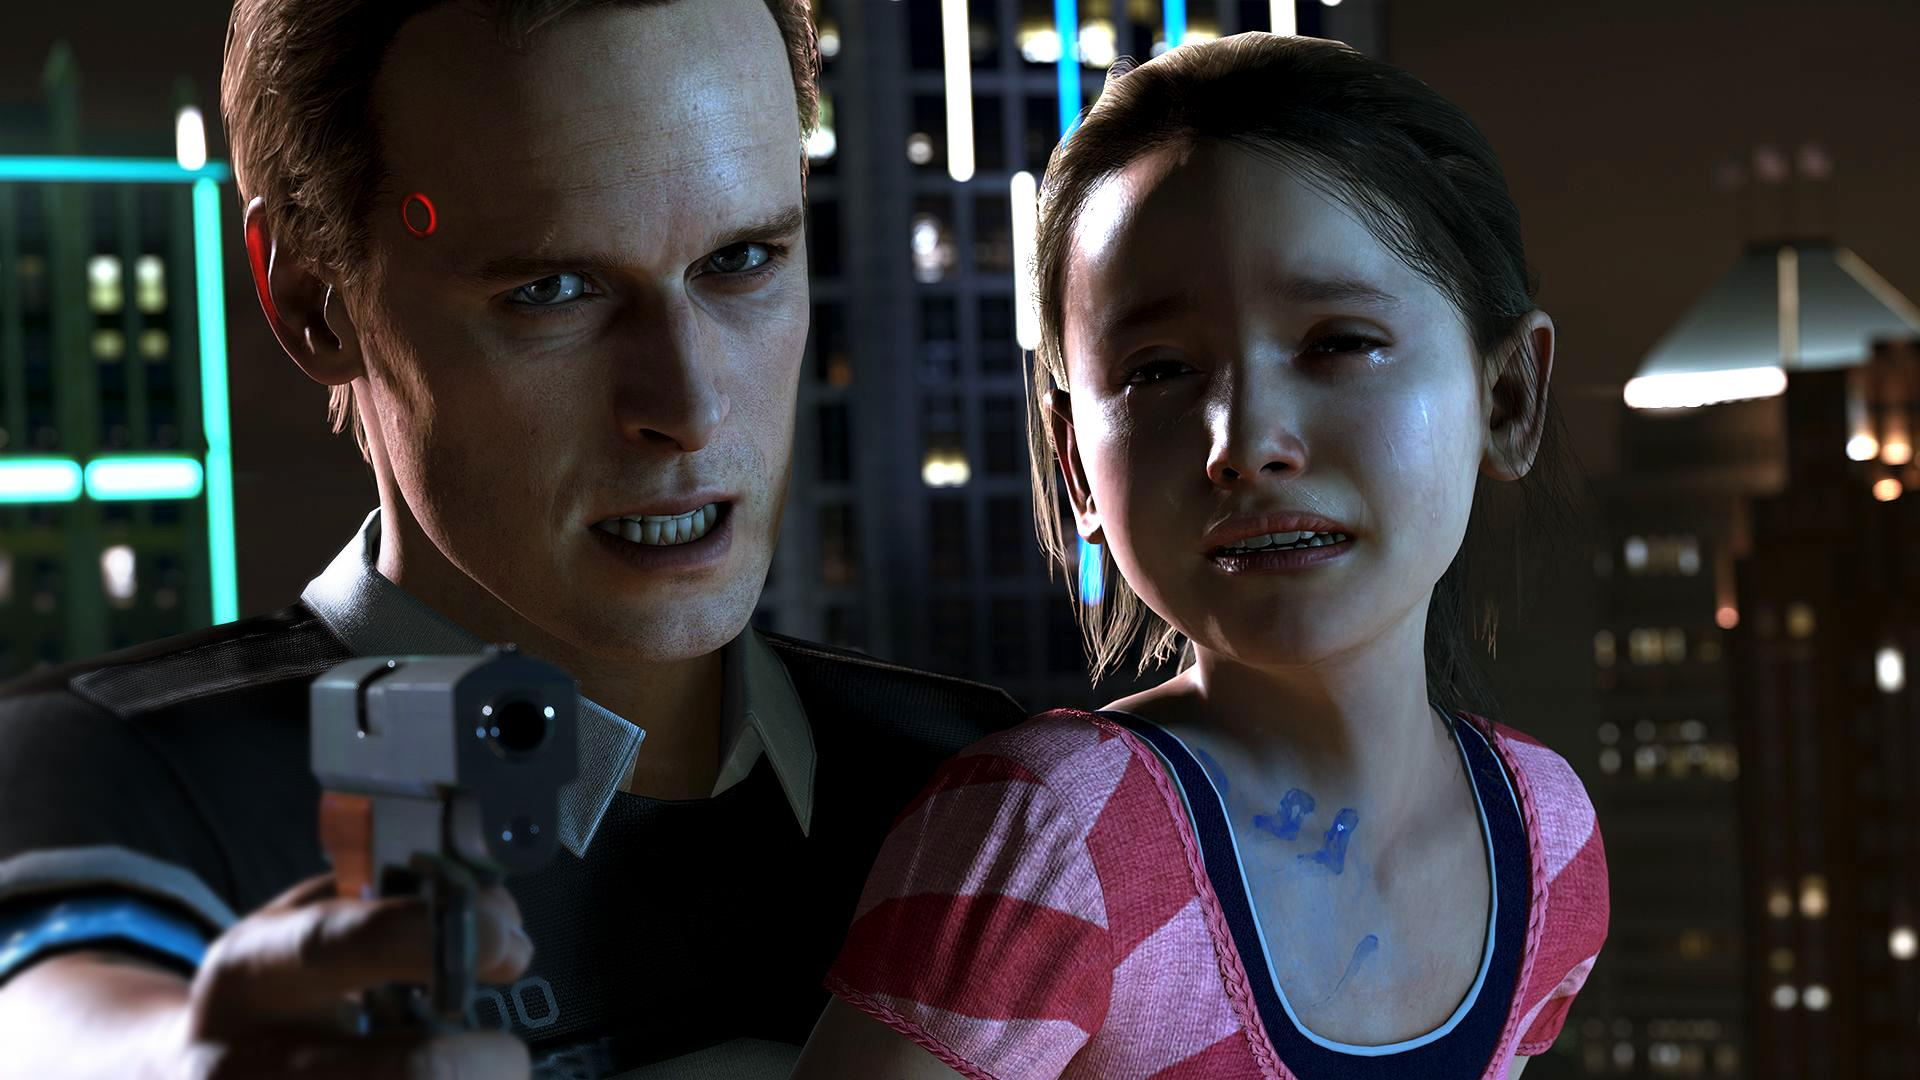 4k Hdr Detroit Become Human Ps4 Pro Gameplay